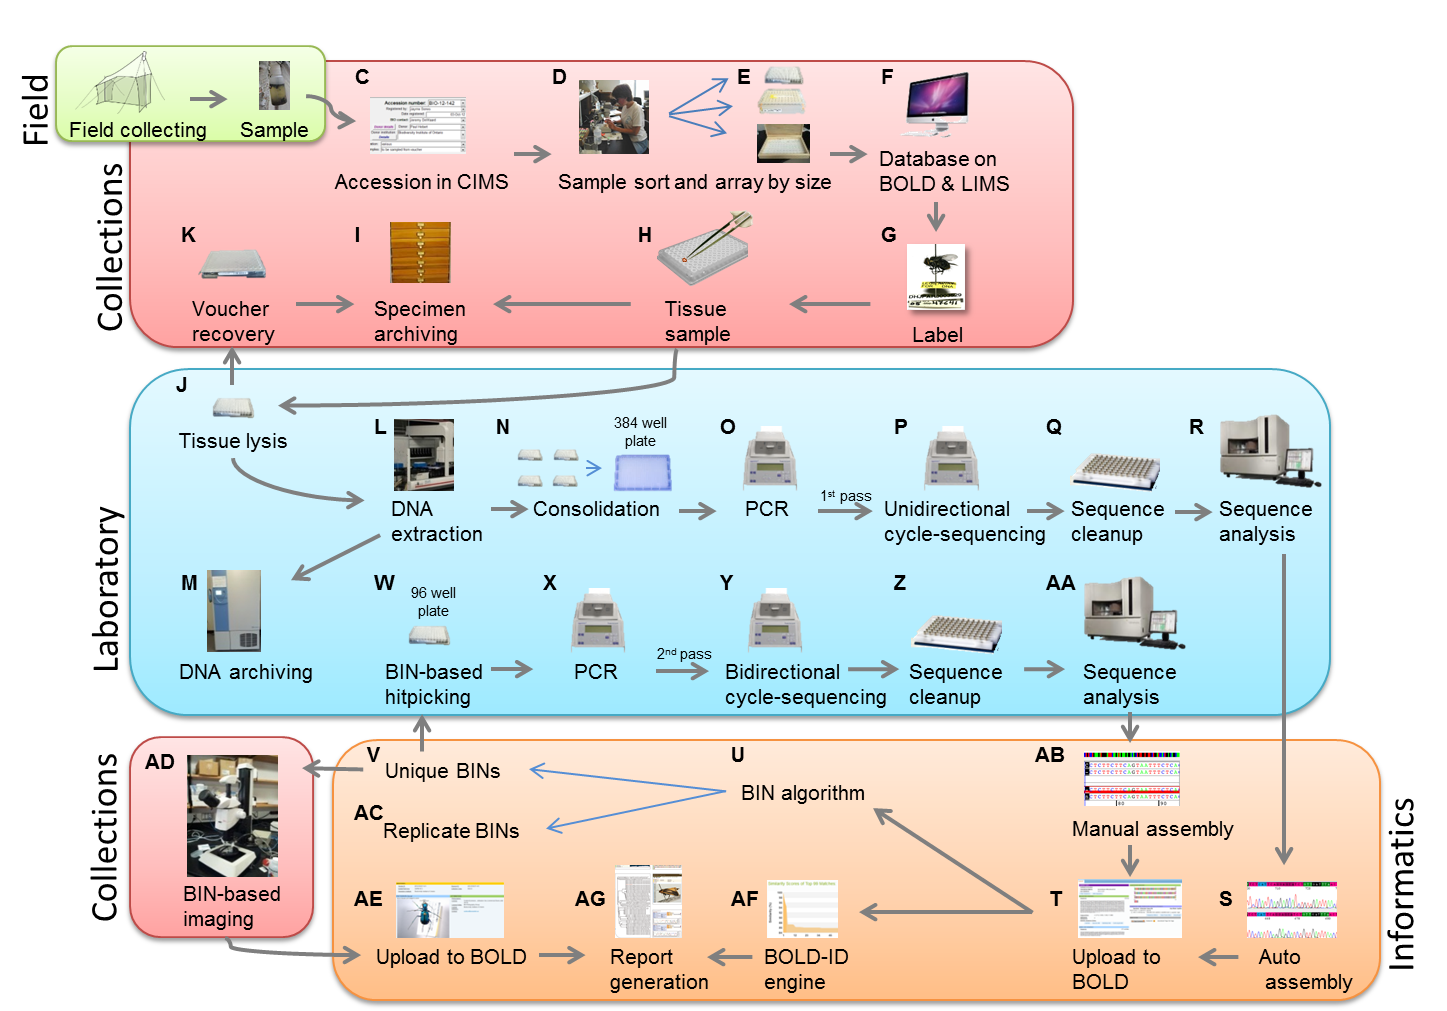 Schematic diagram showing specimen workflow. Front end processing begins with field collecting (A) and proceeds through to archiving of specimens (I). Laboratory analysis begins with tissue lysis (J) through to sequence analysis (AA). The informatics workflow includes both manual (AB) and auto sequence assembly (S), and finishes with BIN assignments and subsequent imaging of each BIN (AD).